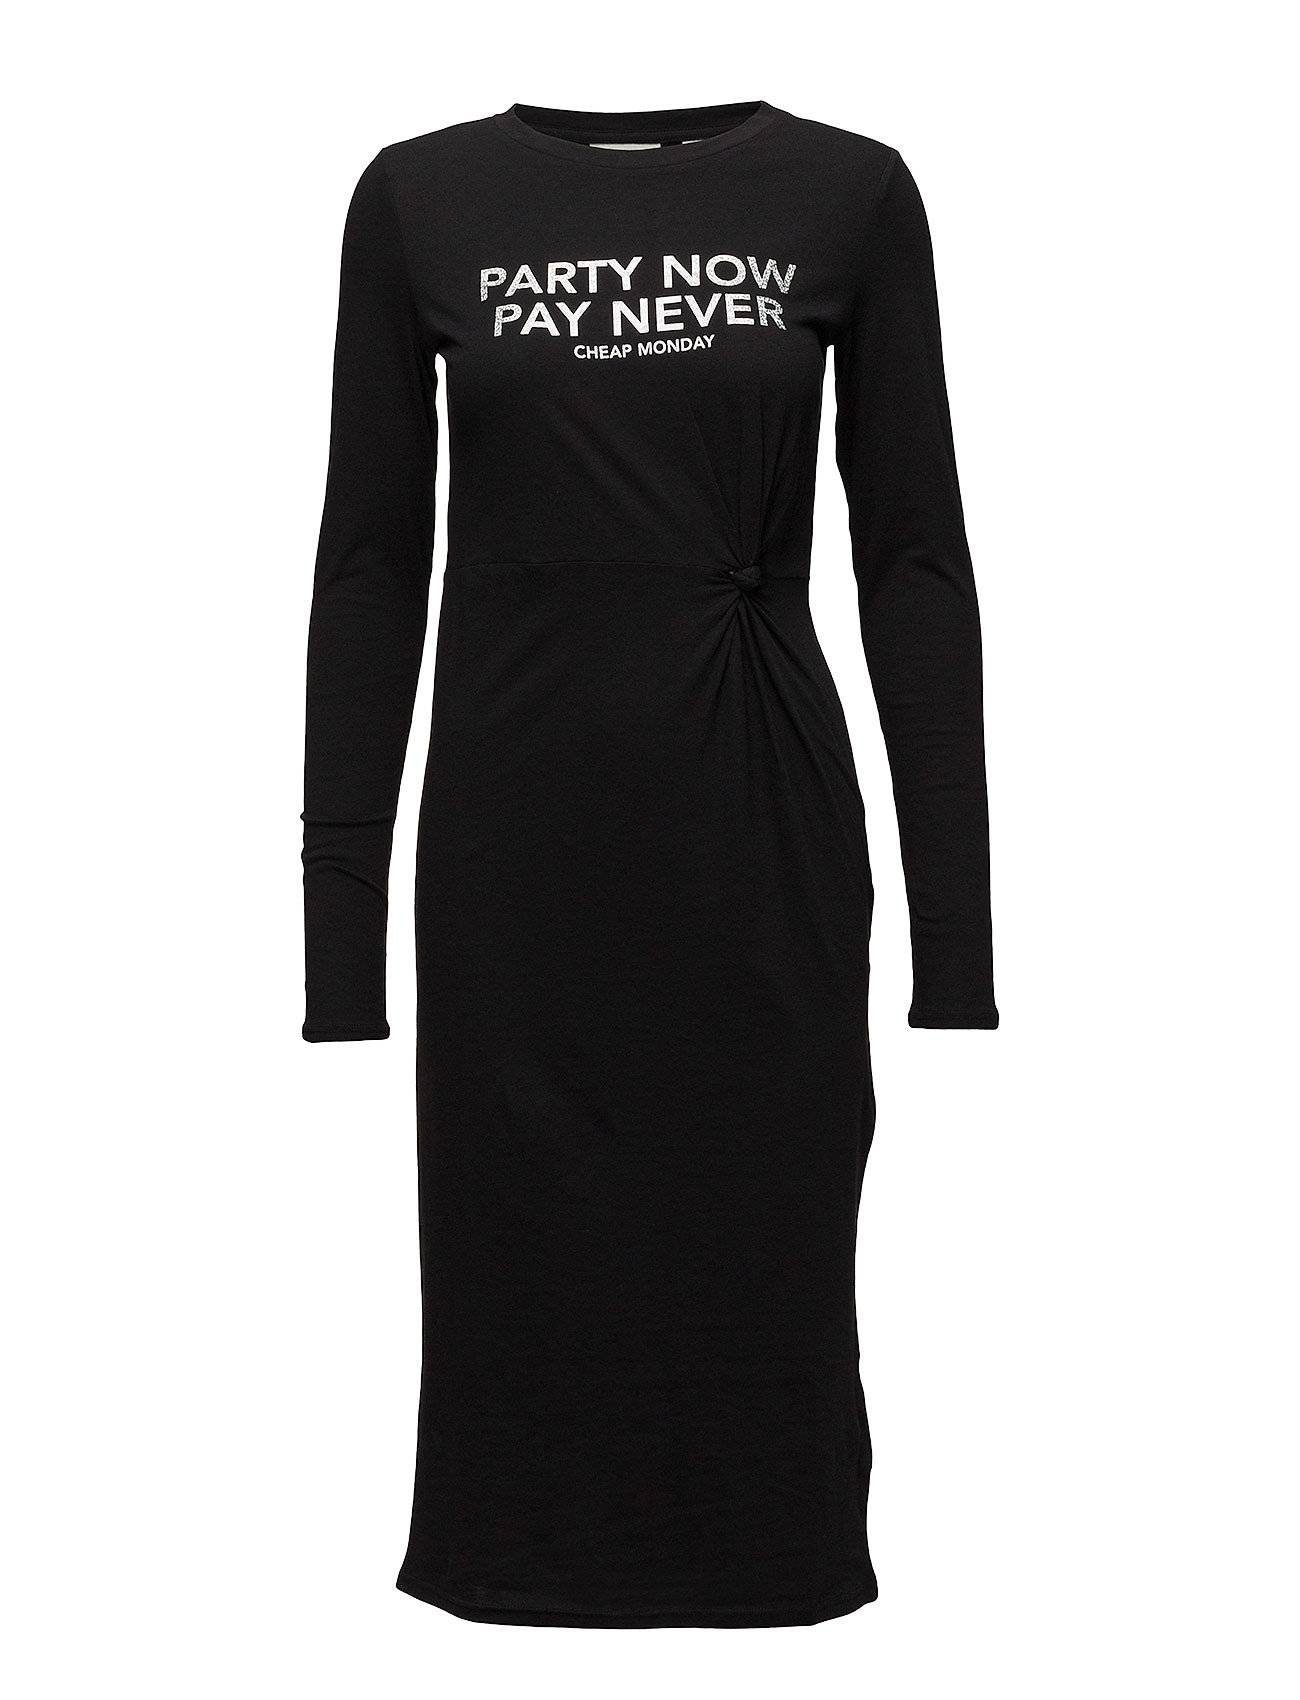 Cheap Monday Late Dress Party Now